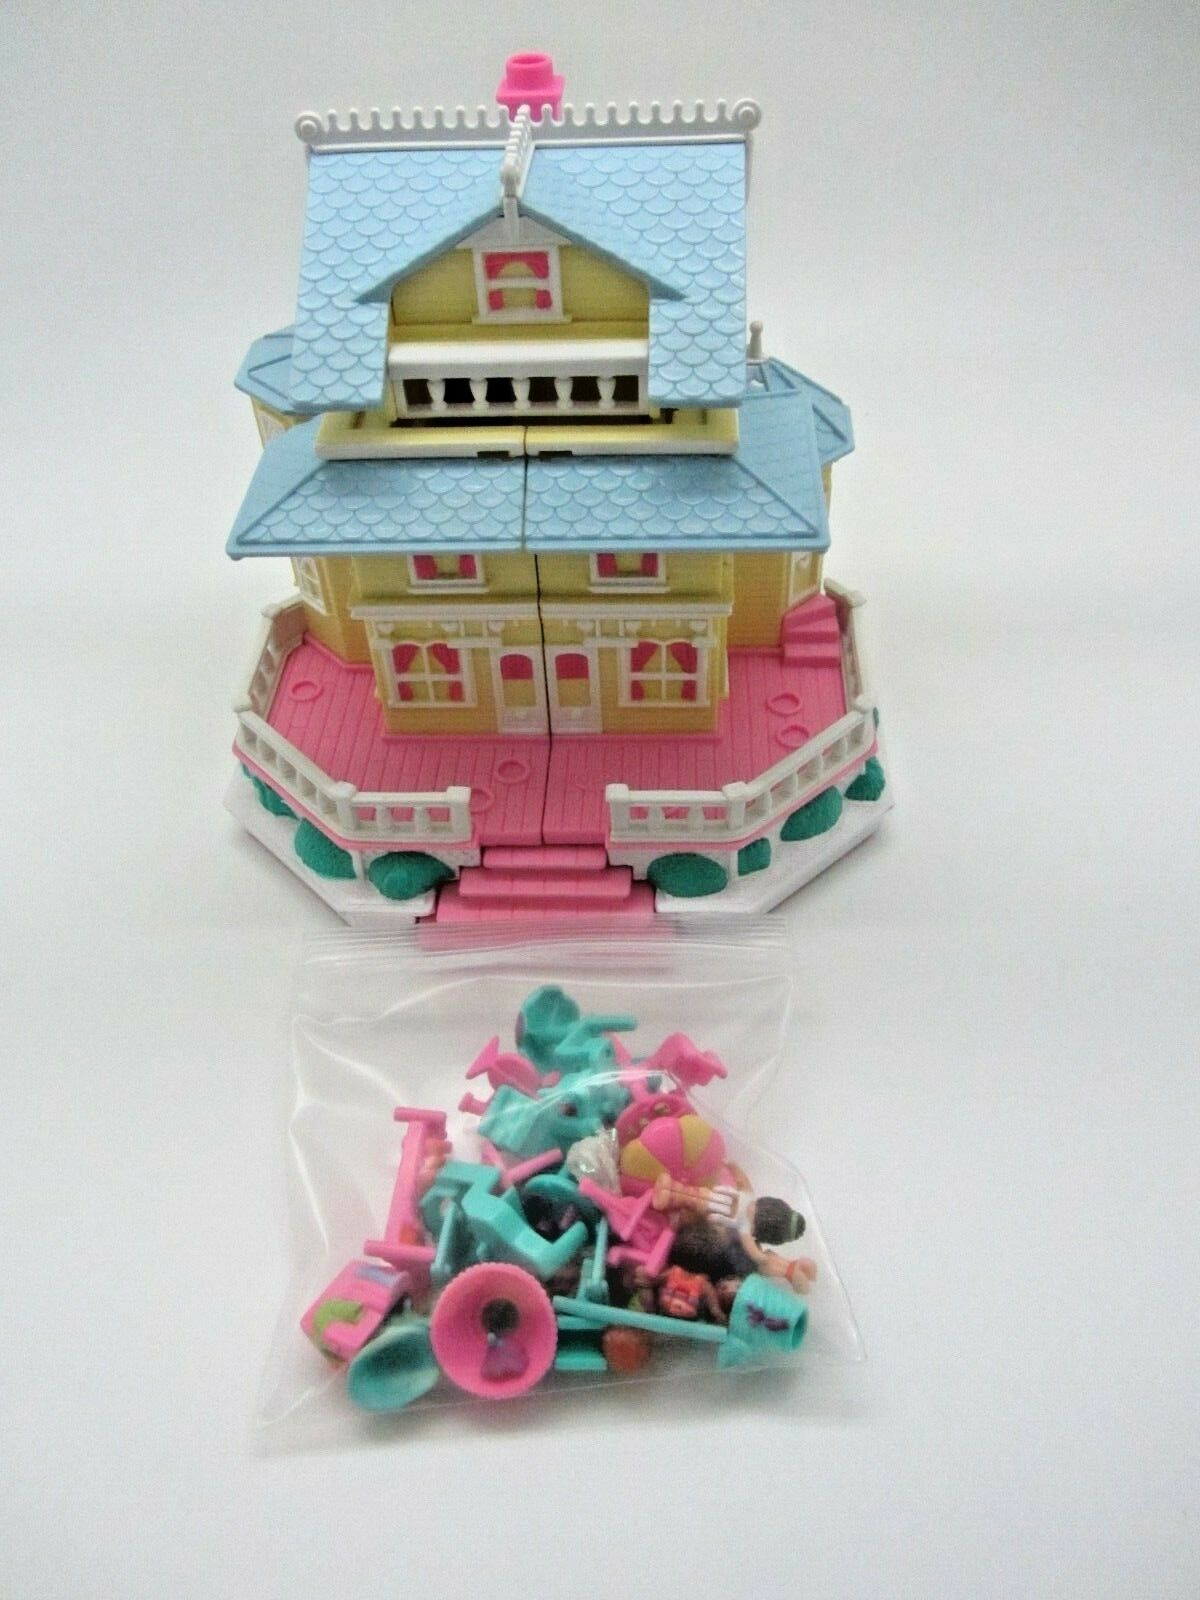 POLLY POCKET 1995 Vereinhaus Pop up Party Play haus   100% Complete